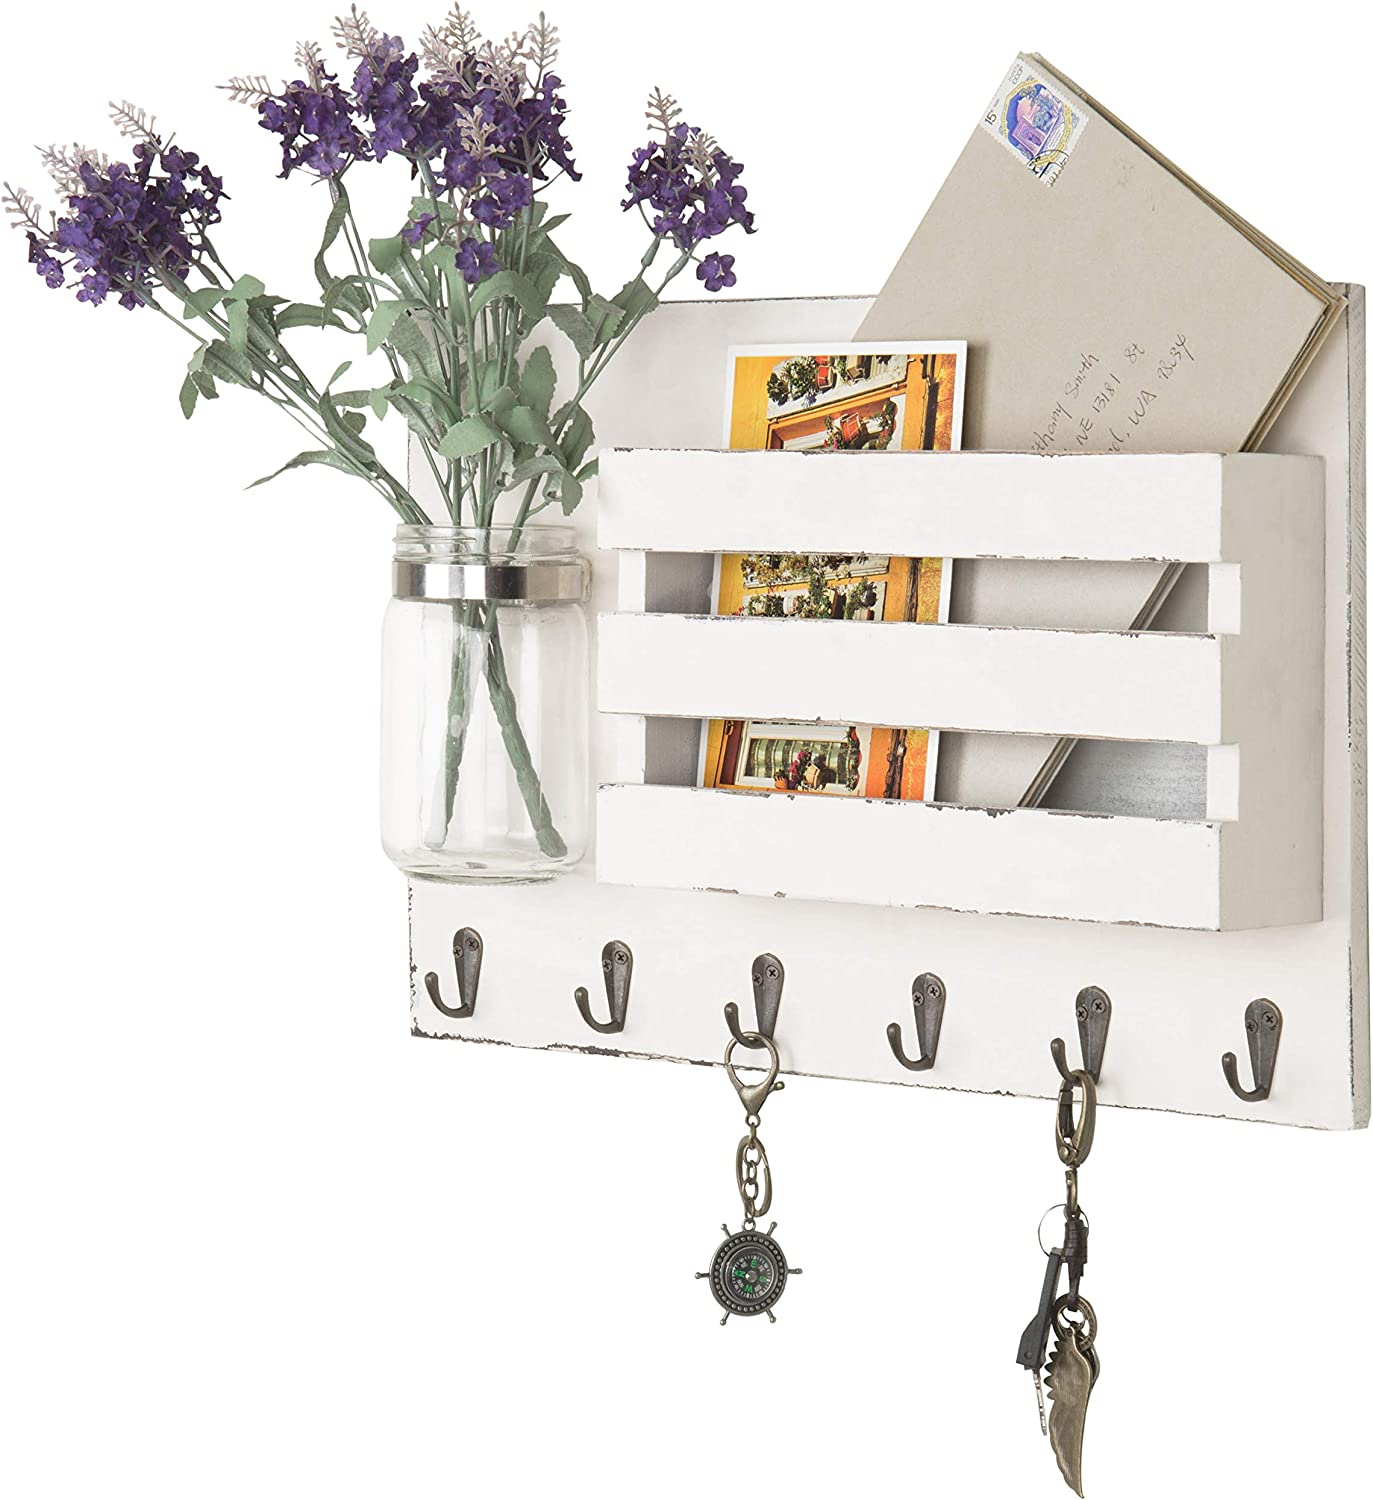 MyGift Wall-Mounted Vintage White Wooden Mail Holder Organizer with 6 Key Hooks & Mason Jar